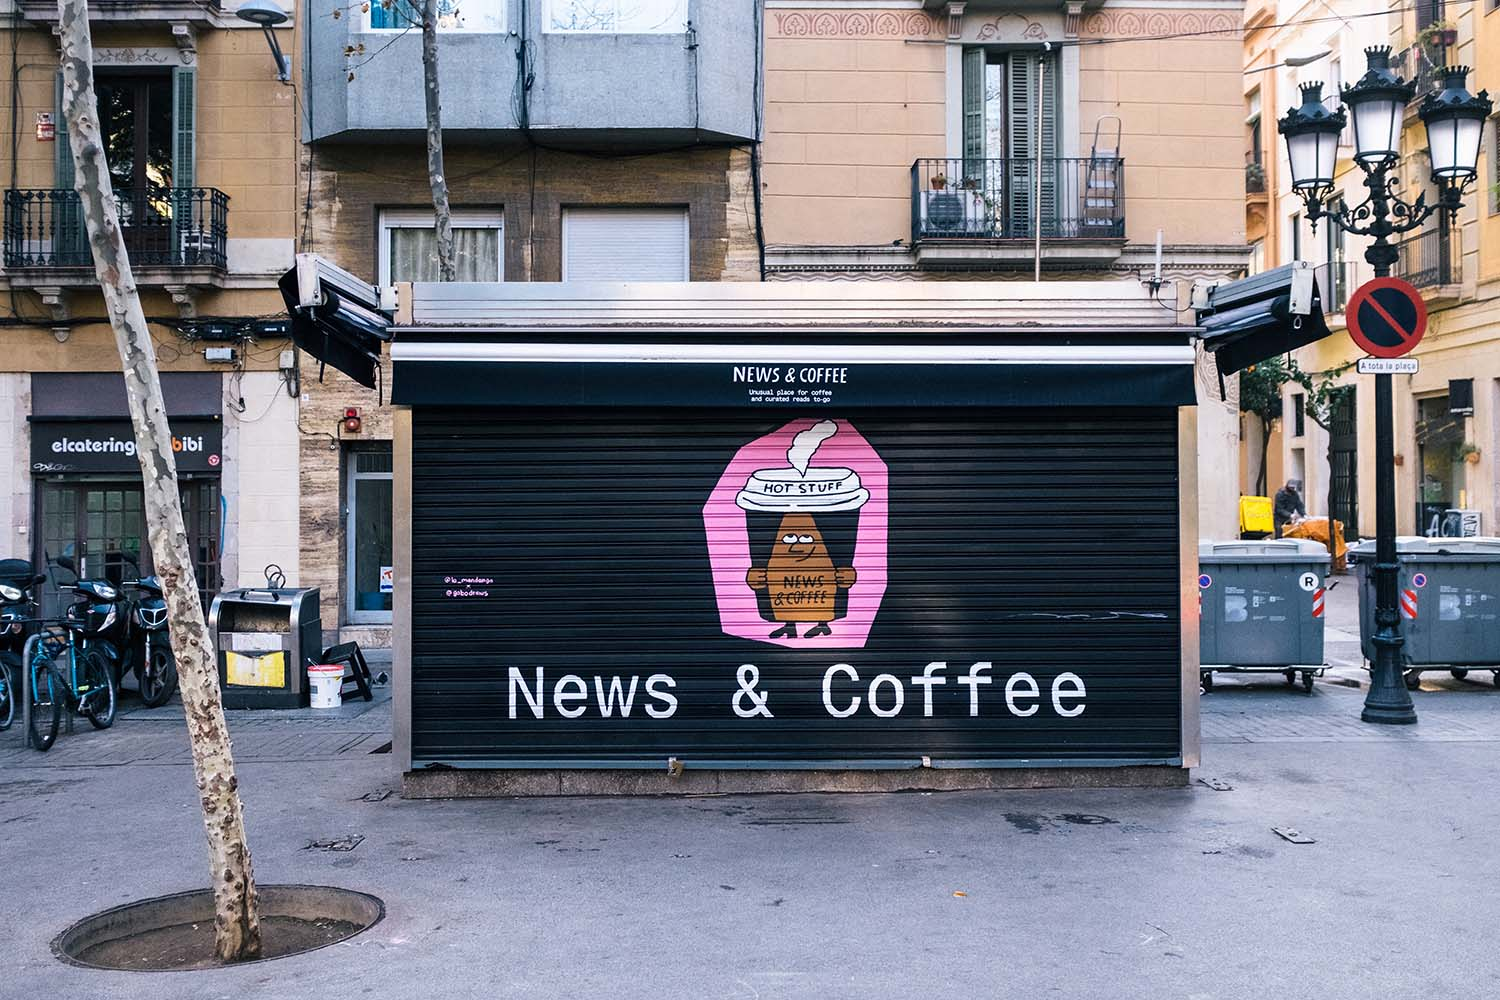 News & Coffee Barcelona, Newsstands Given a New Lease of Life